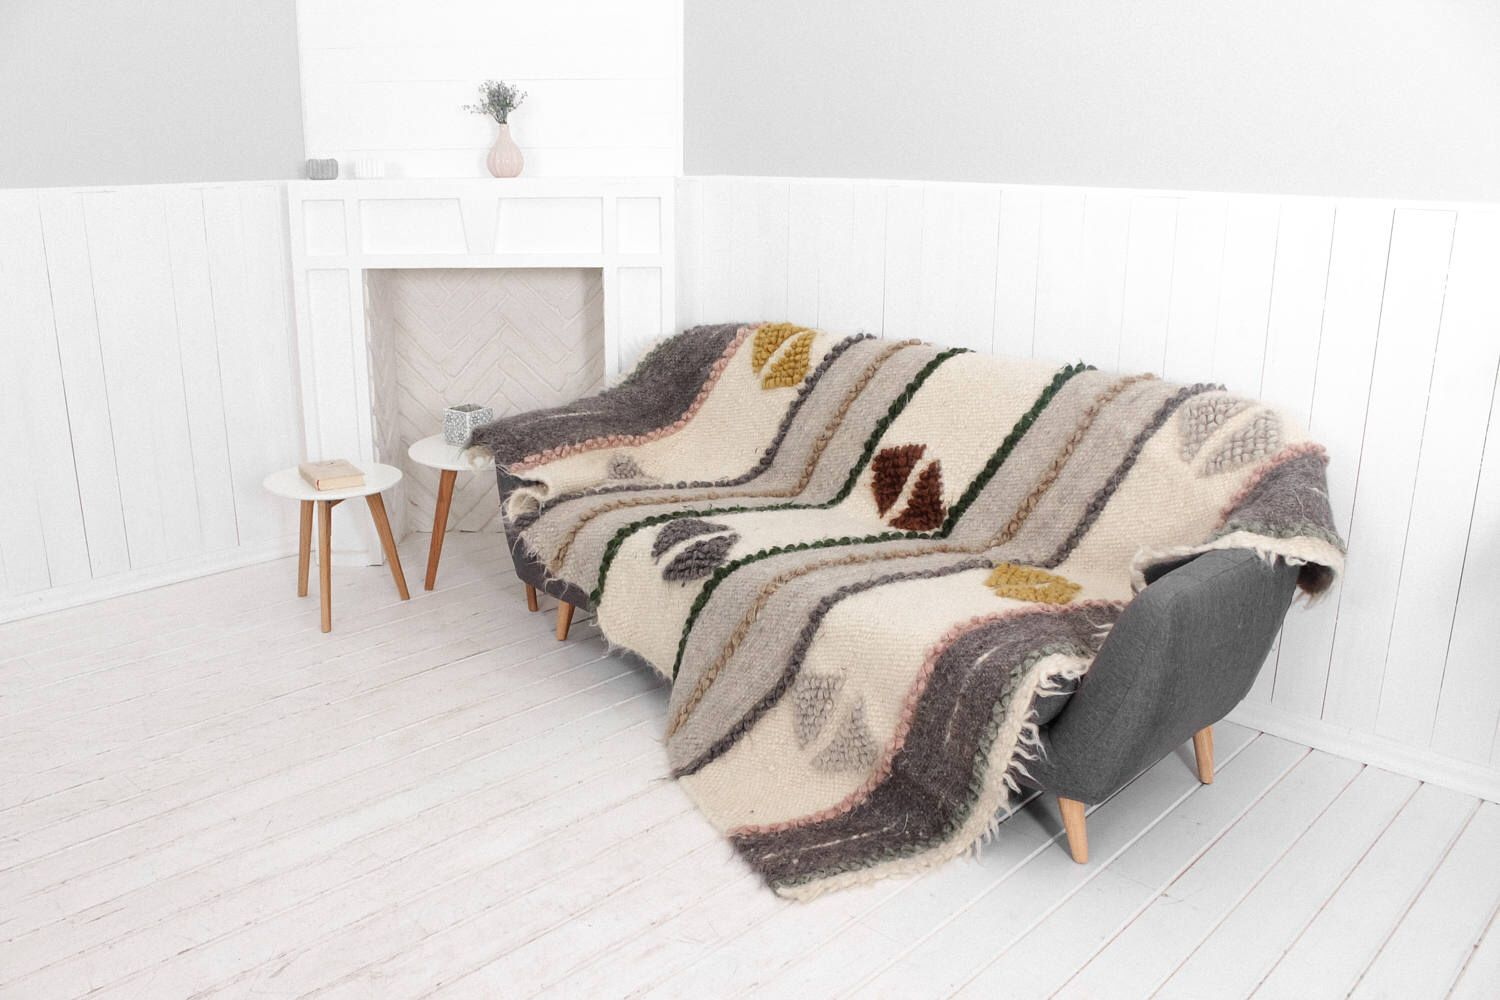 Weighted wool throw blanket, Sofa cover, Hand woven throw